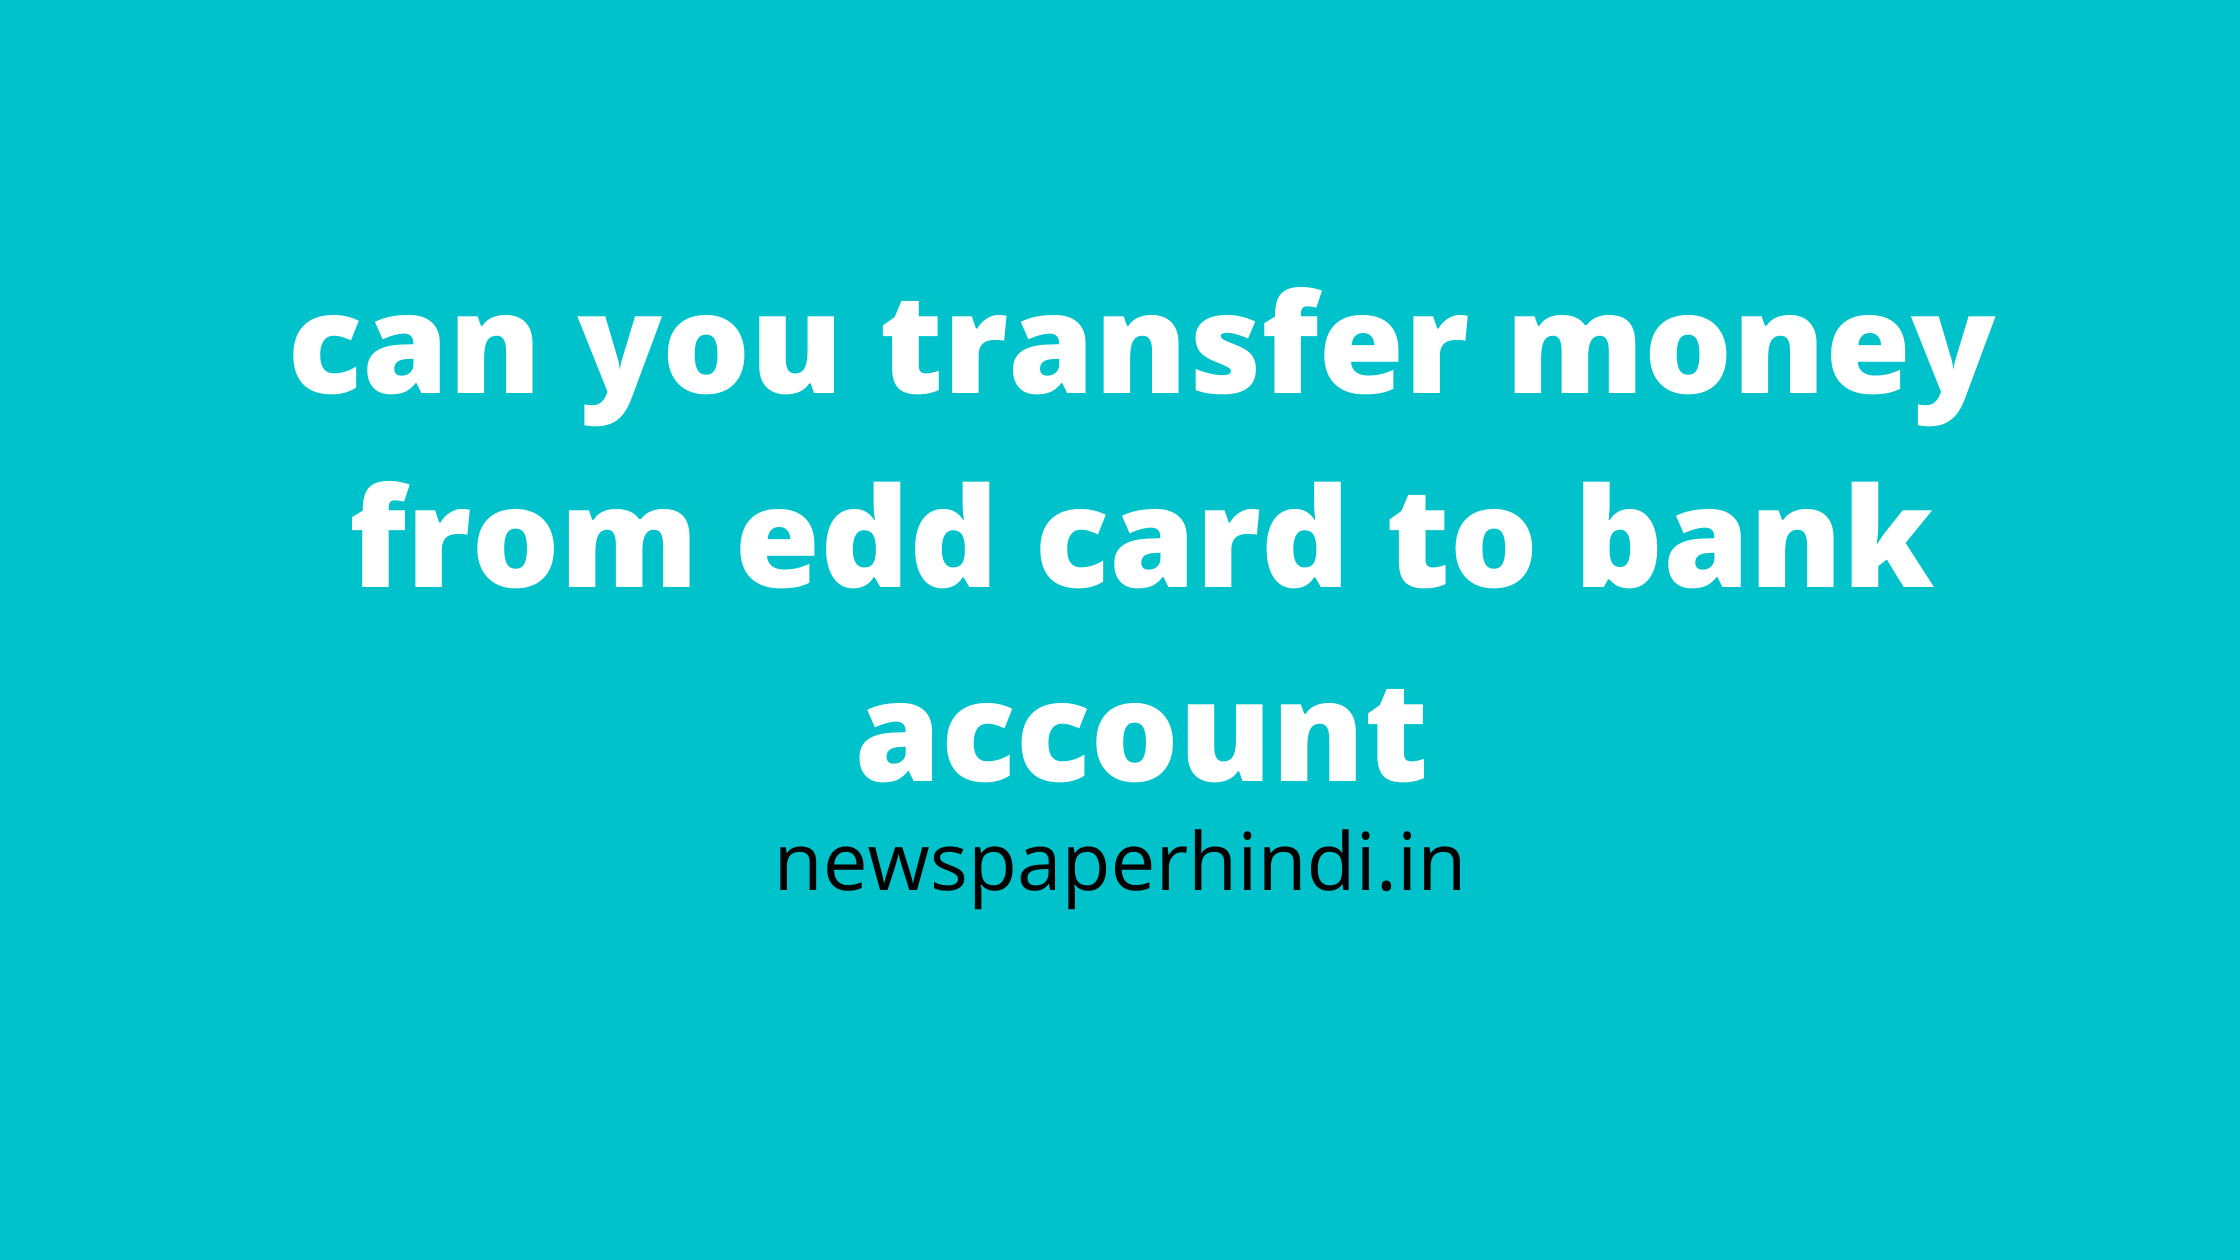 can you transfer money from edd card to bank account